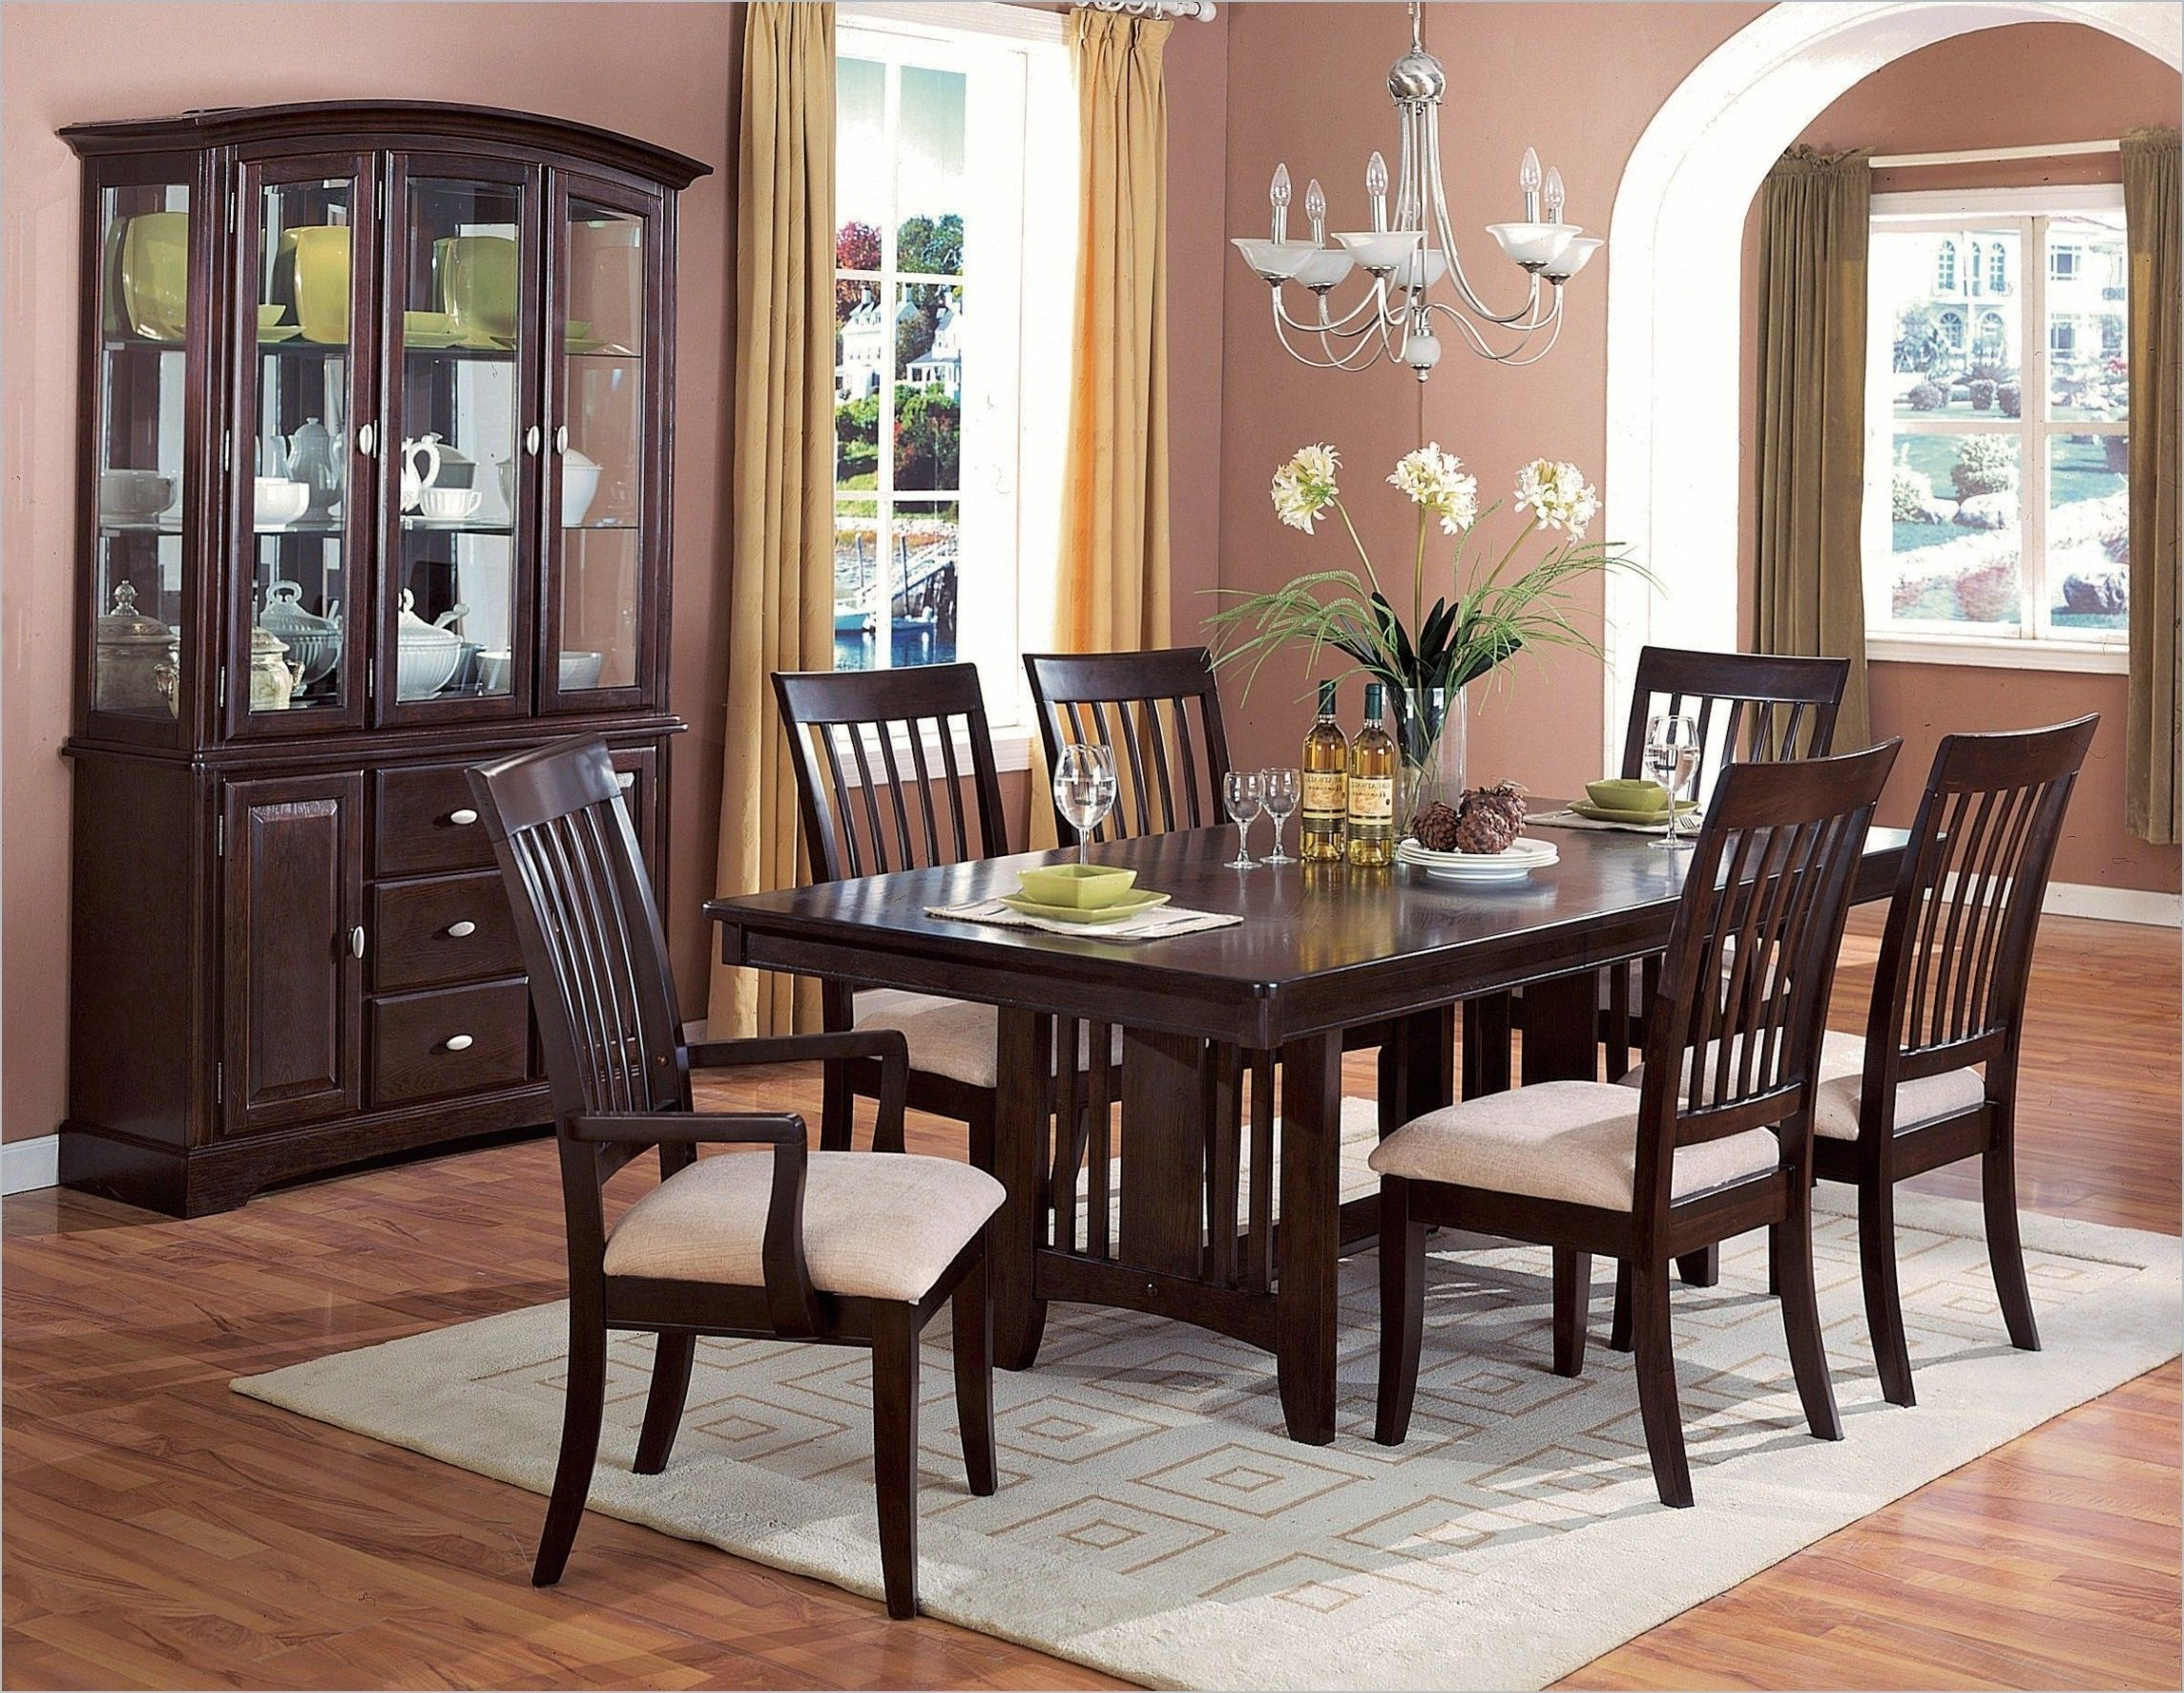 Top 10 Dining Room Decorating Ideas On A Budget | Area rug ...